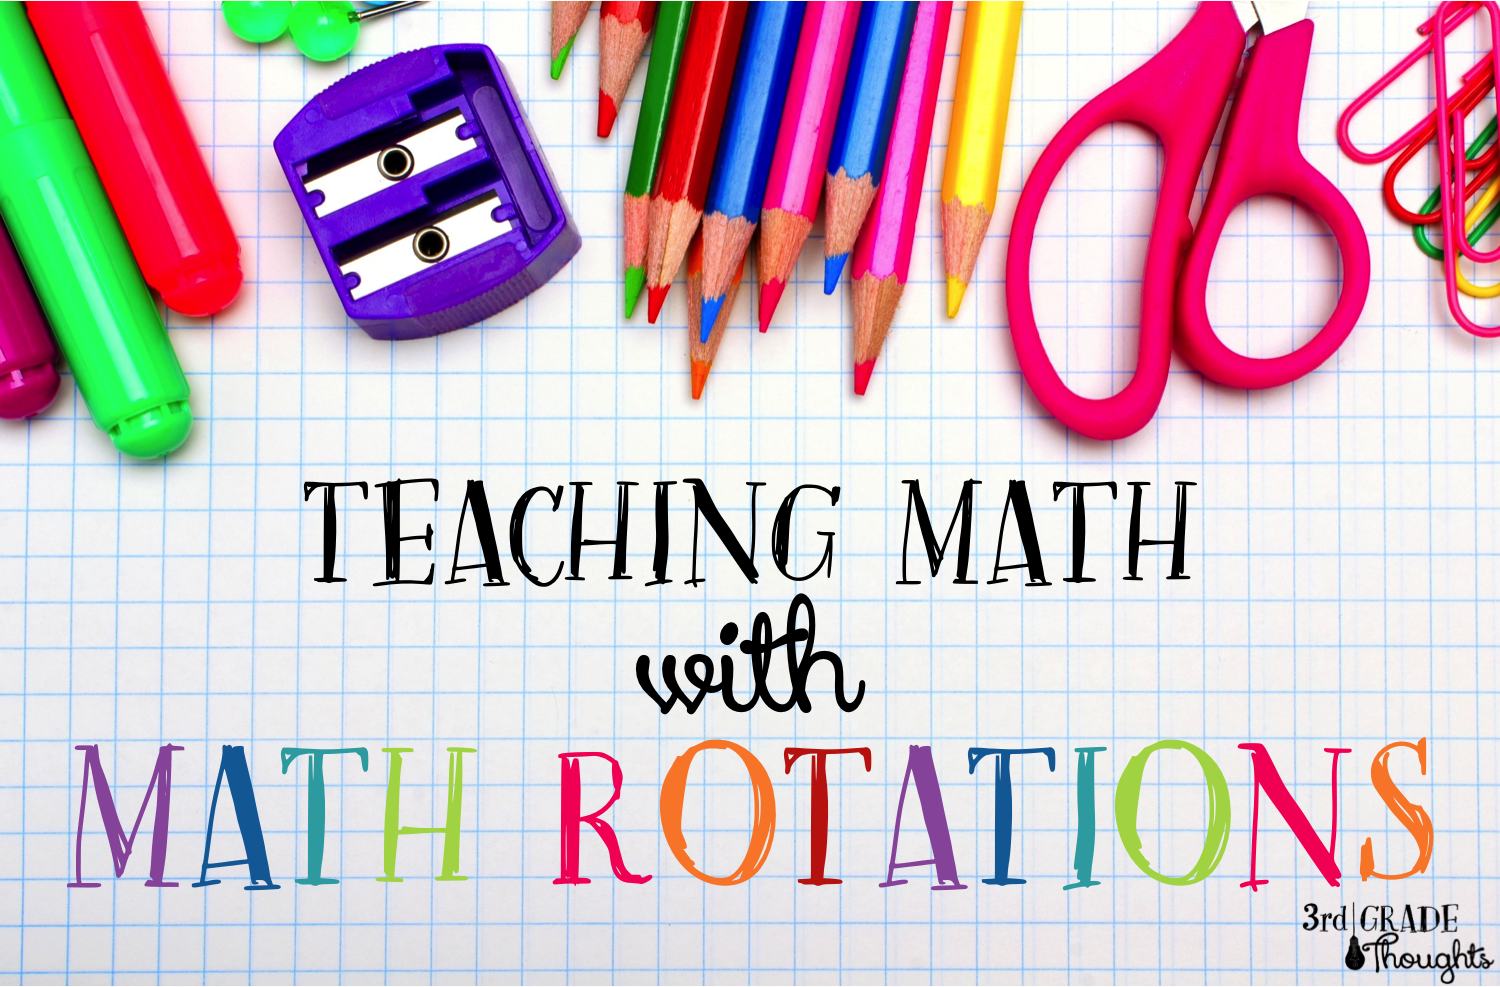 Why I Now Love Teaching Math Setting Up Math Rotations